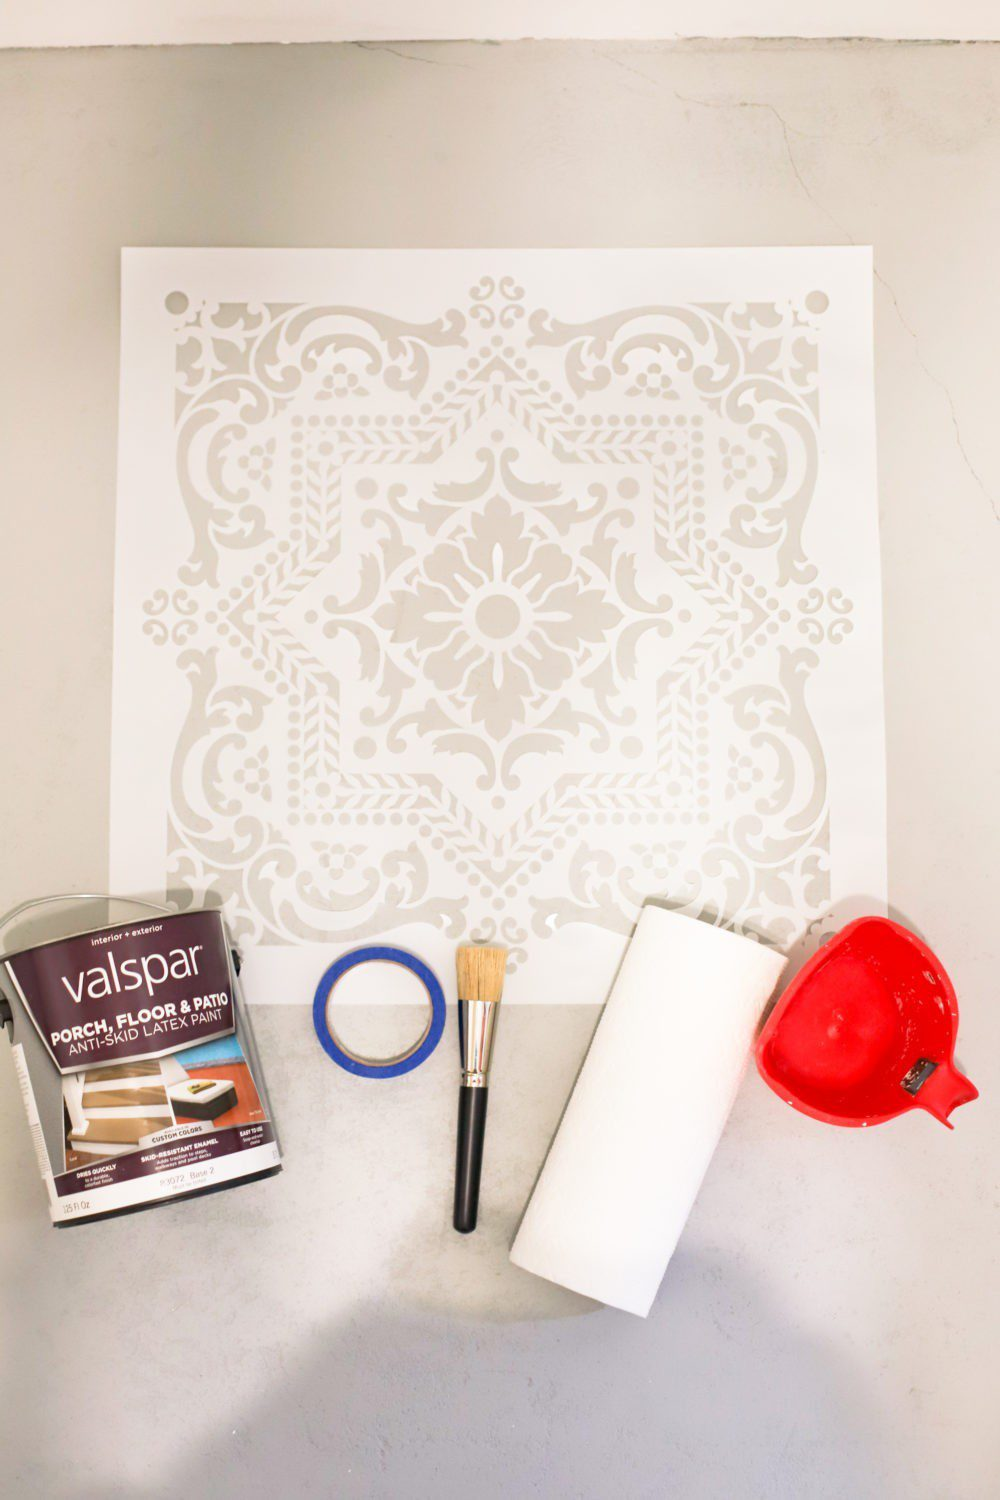 Laundry Room DIY: How to Paint a Cement Floor with Stencils | Laundry Room DIY: How to Paint a Cement Floor with Stencils by popular home decor blog, Fresh Mommy: image of a stencil, Valspar porch and floor paint, painters tape, paint brush, paint bowl, and paint roller.